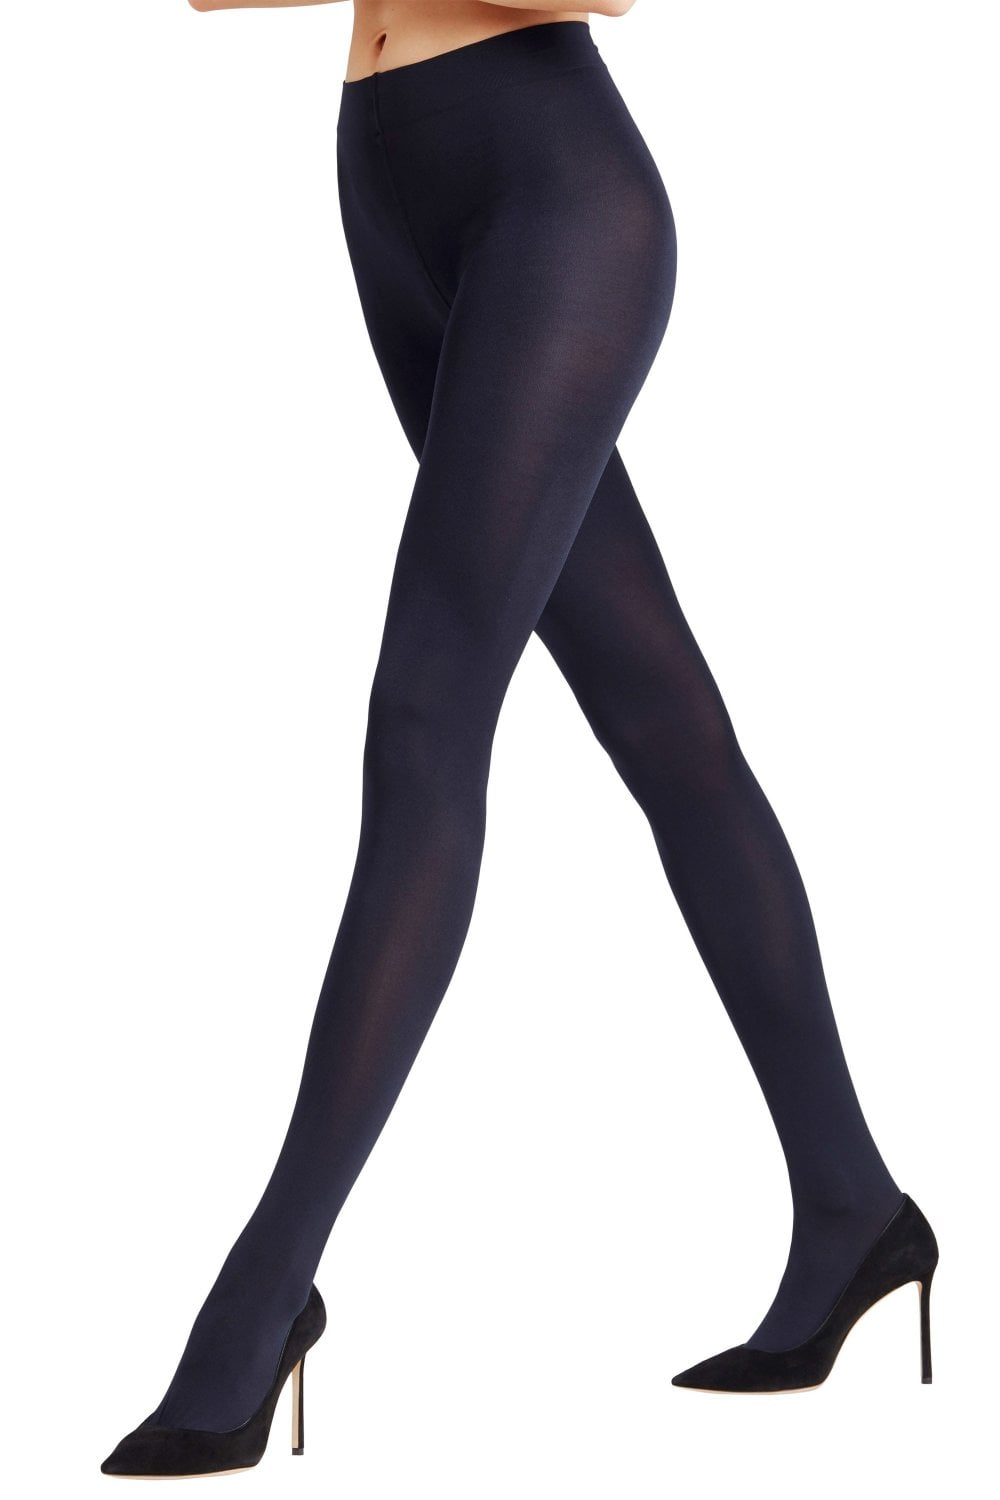 ddb44592143 Falke Seidenglatt 80 Denier Tights 40480